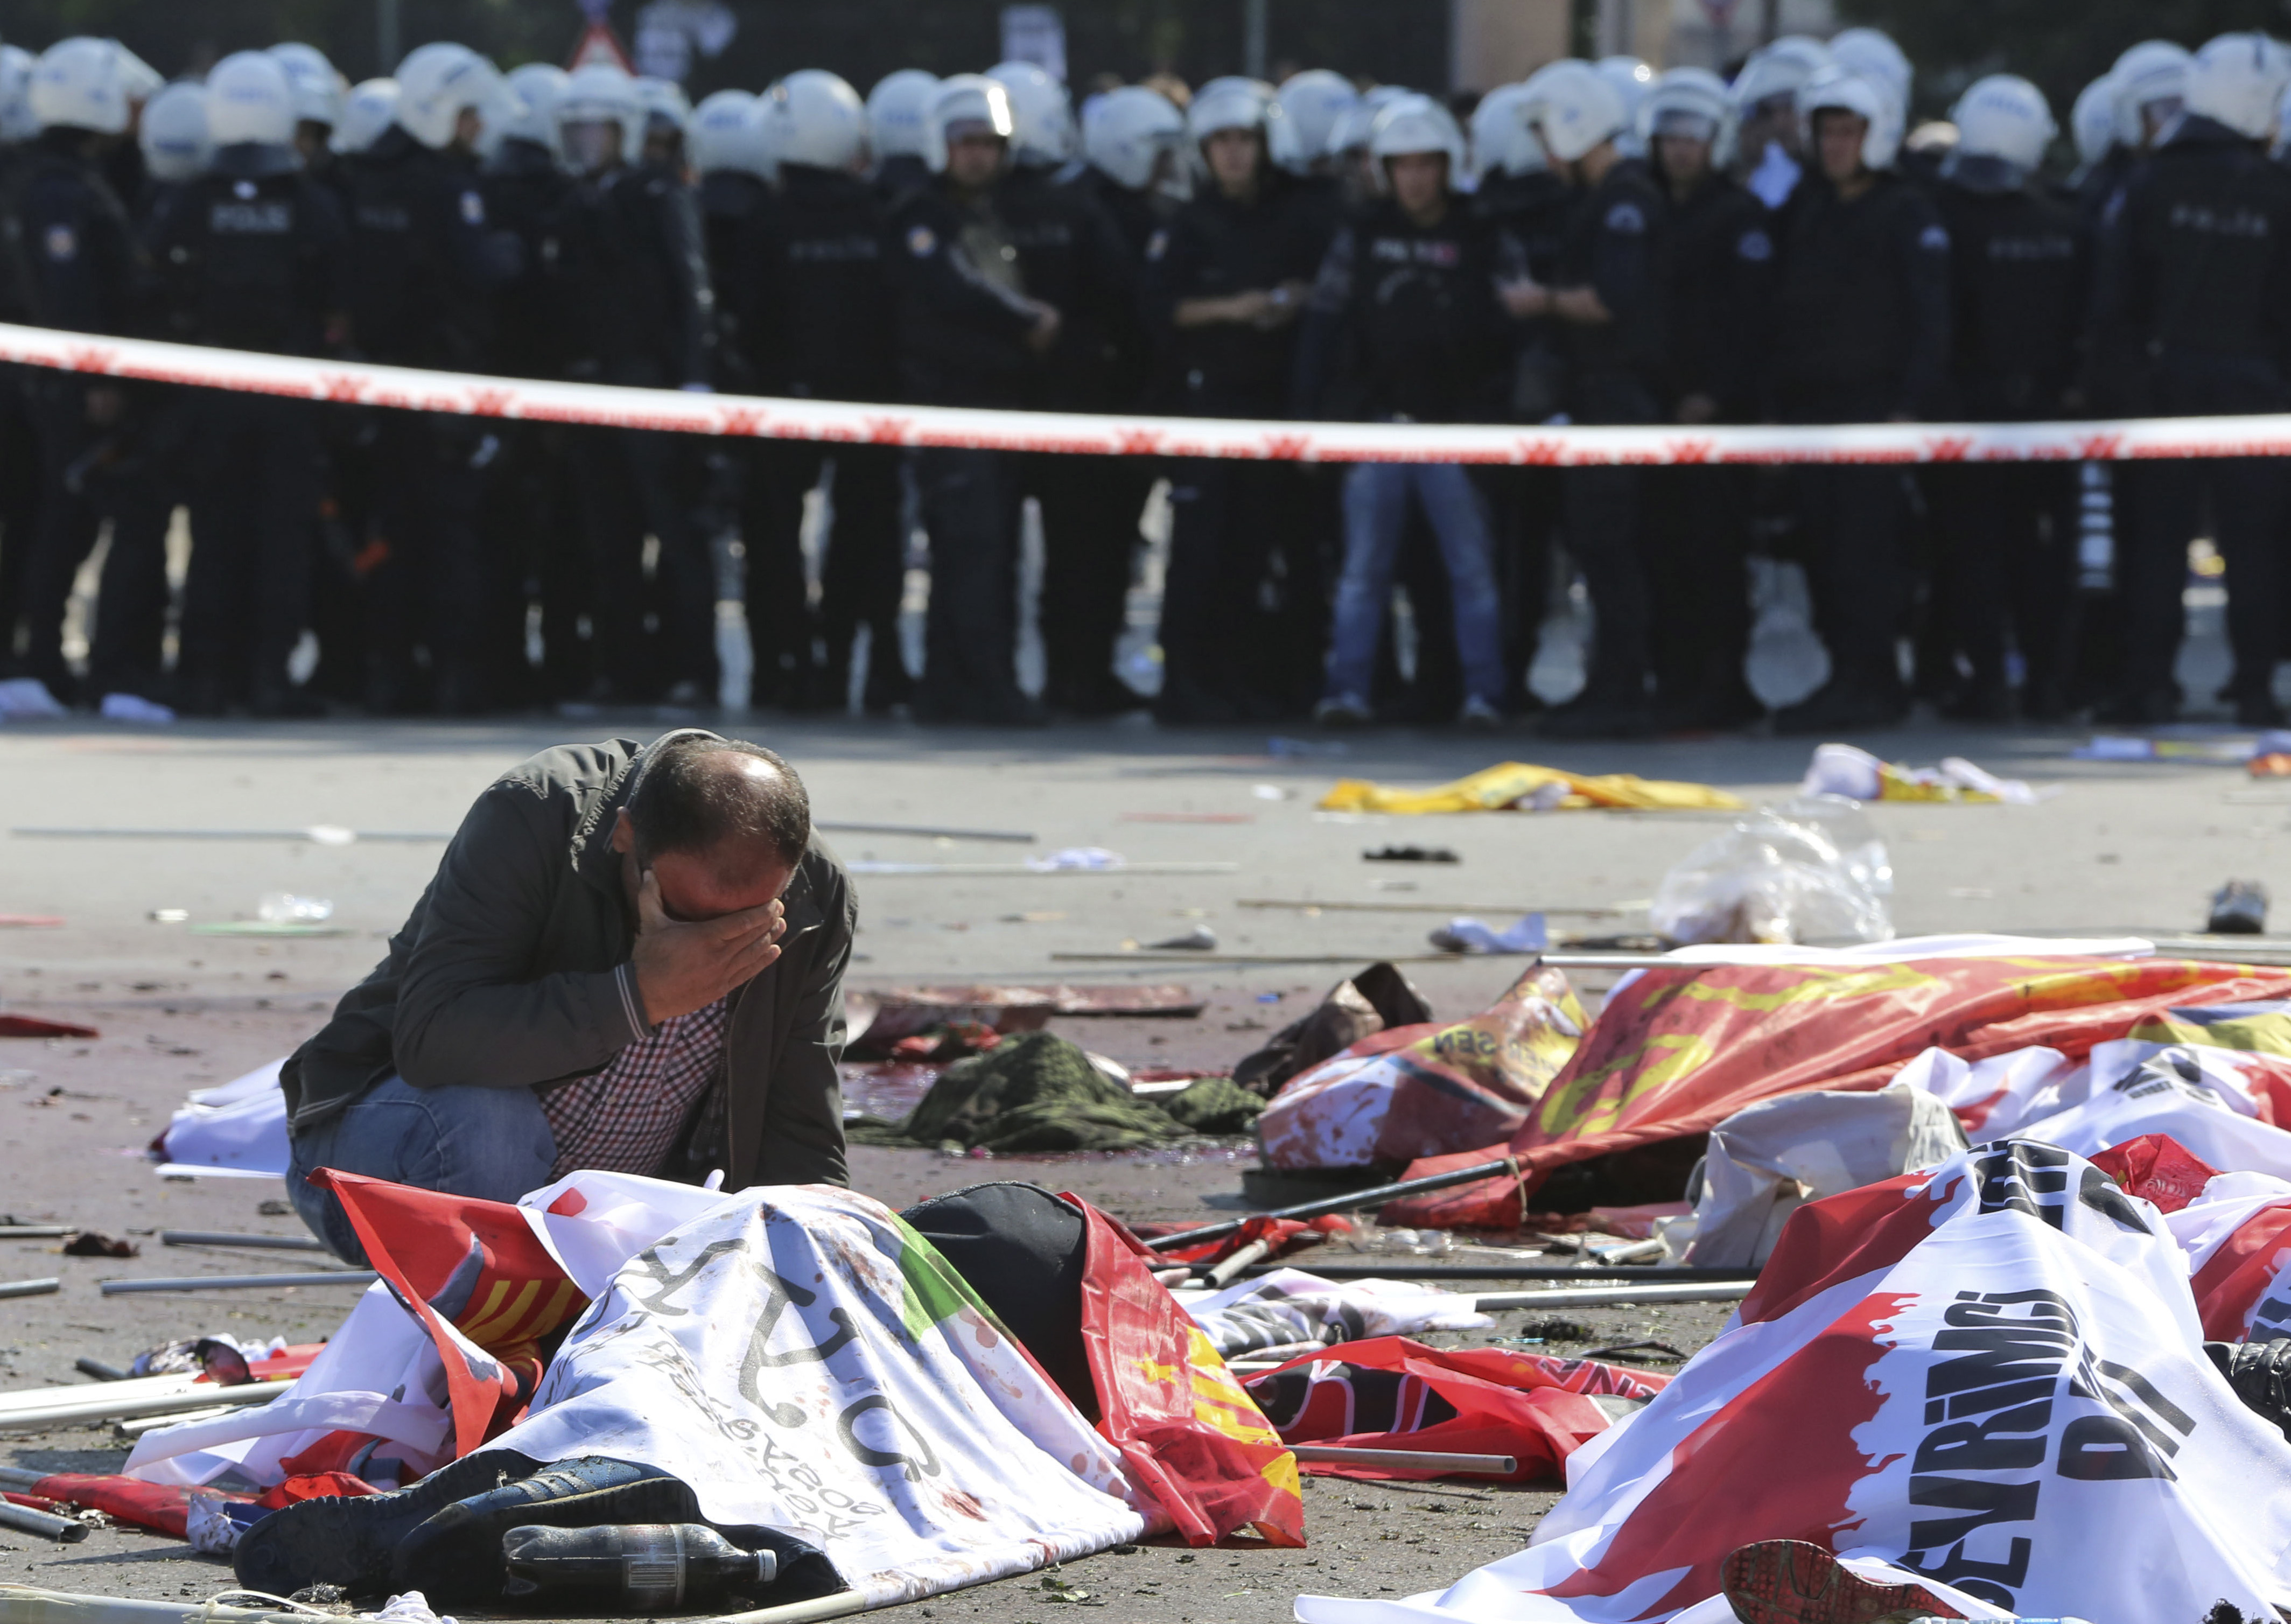 A man cries over the body of a victim, at the site of an explosion in Ankara, Turkey, on Oct. 10, 2015.